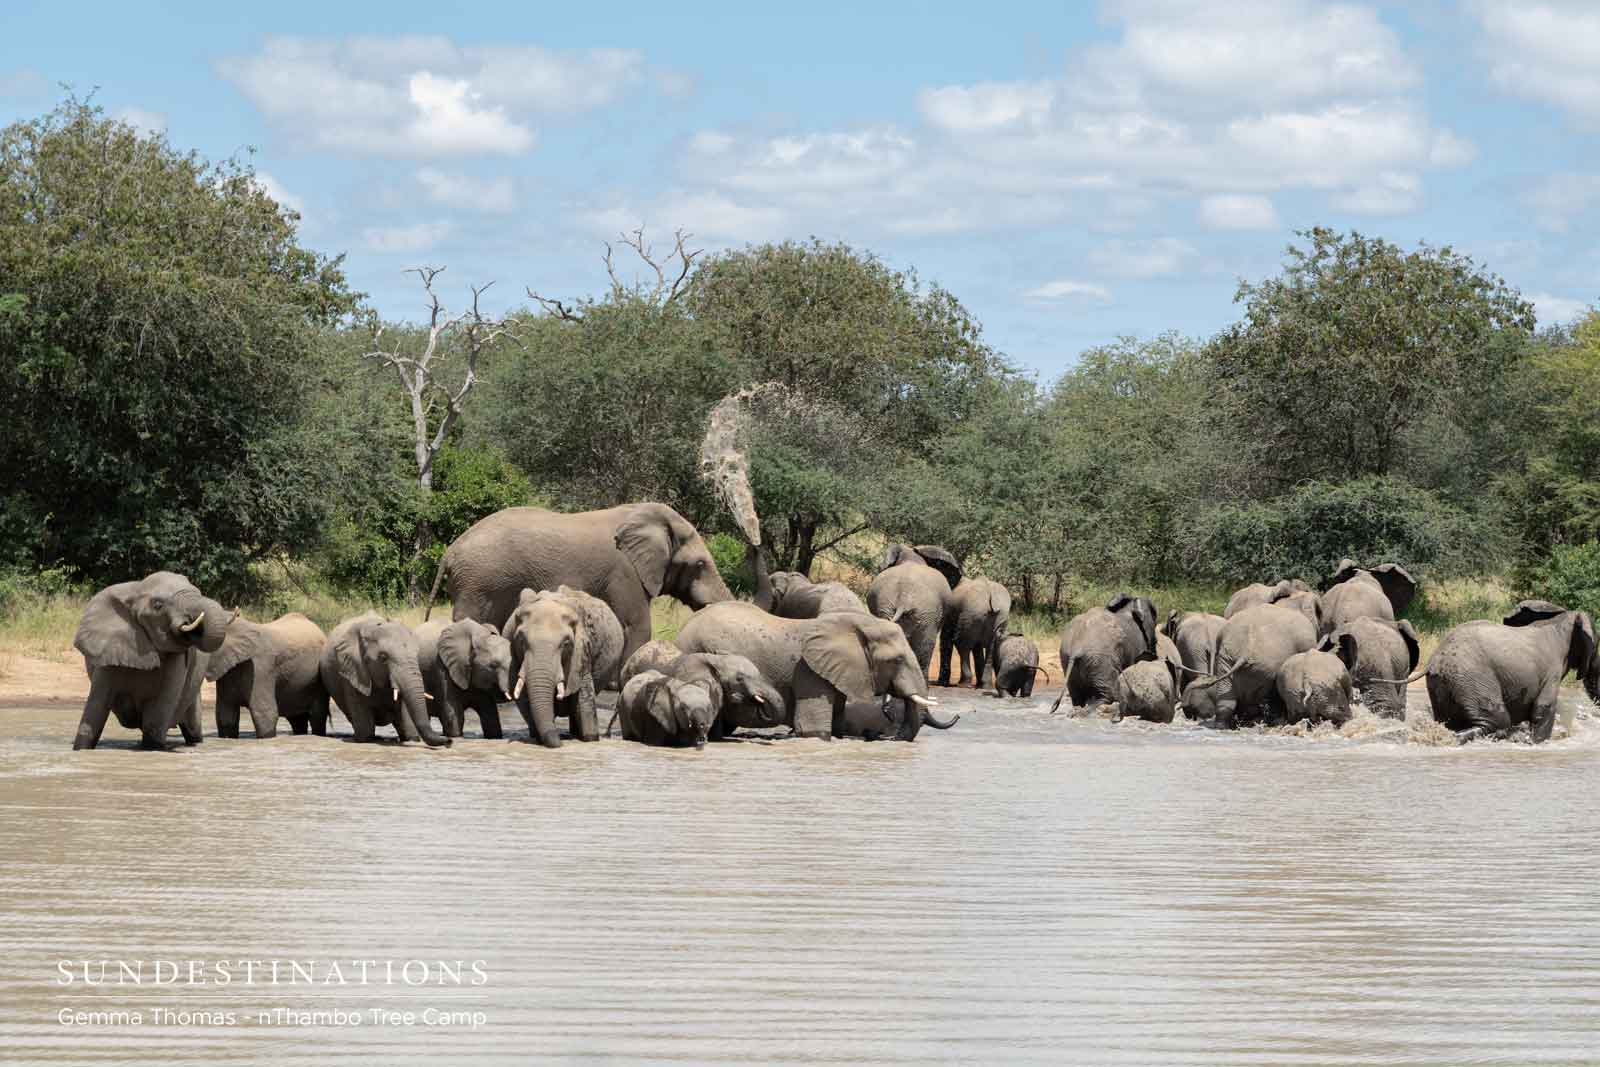 Elephants at nThambo Tree Camp